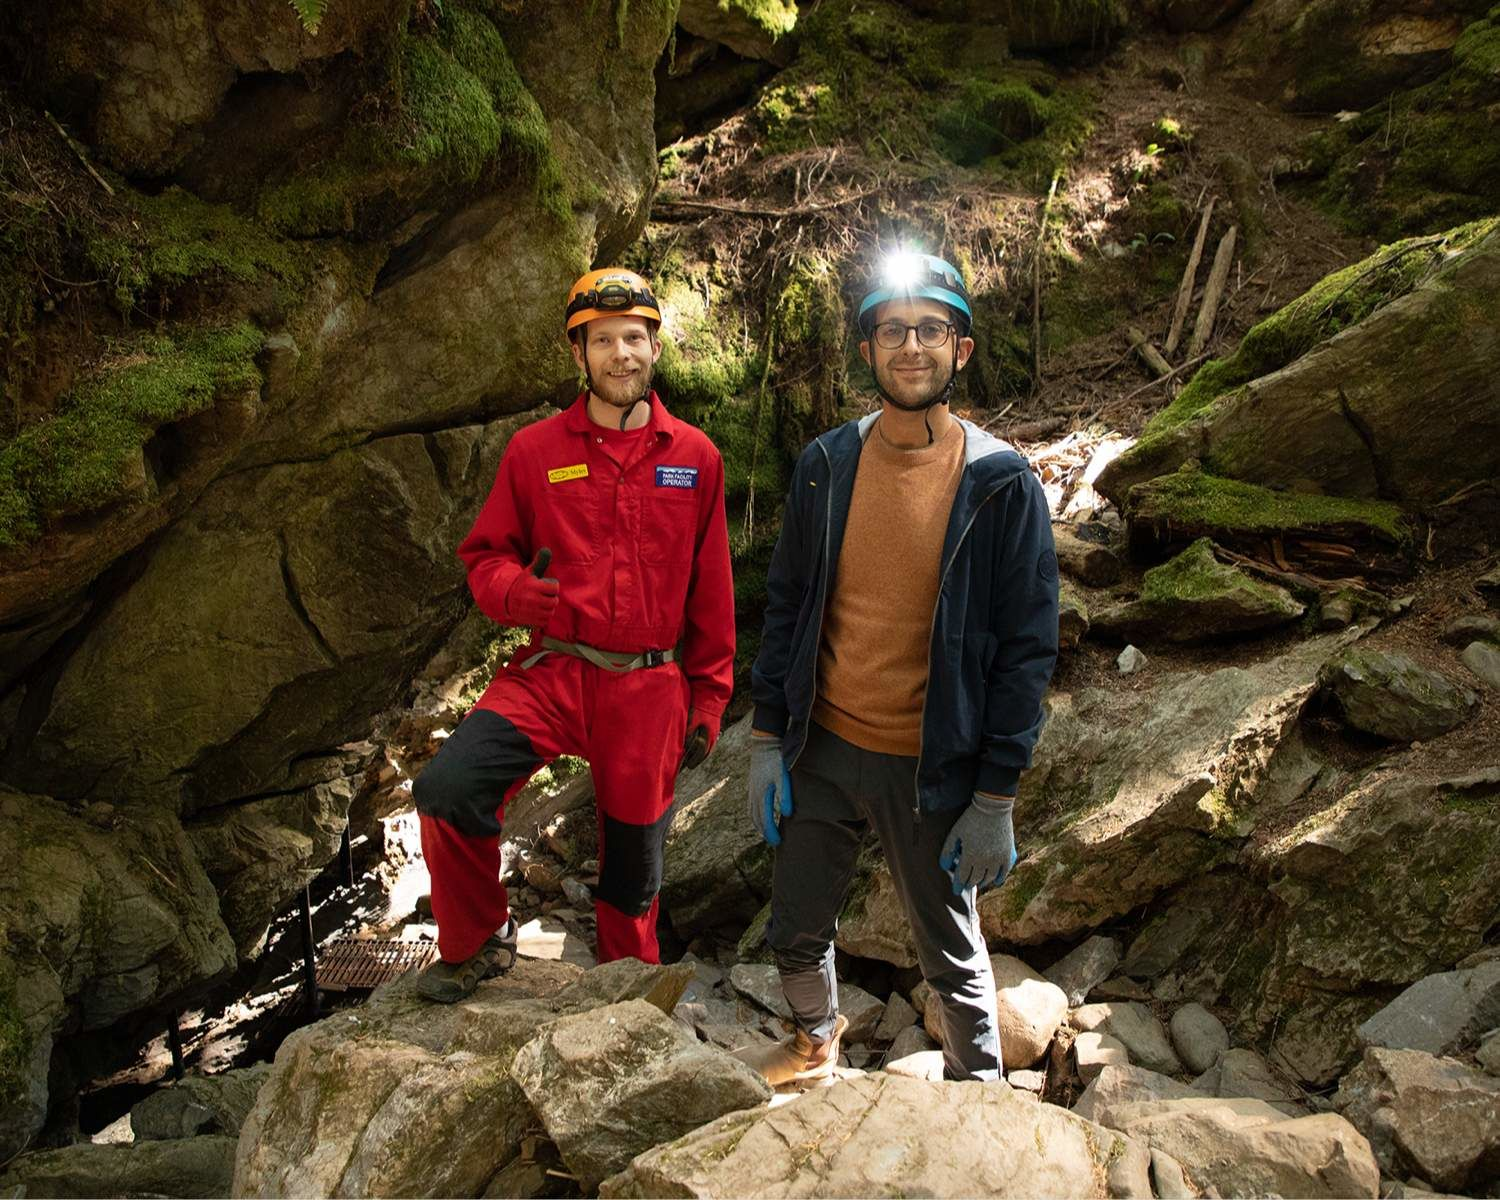 Michael and Myles Fuller at Horne Lake Caves